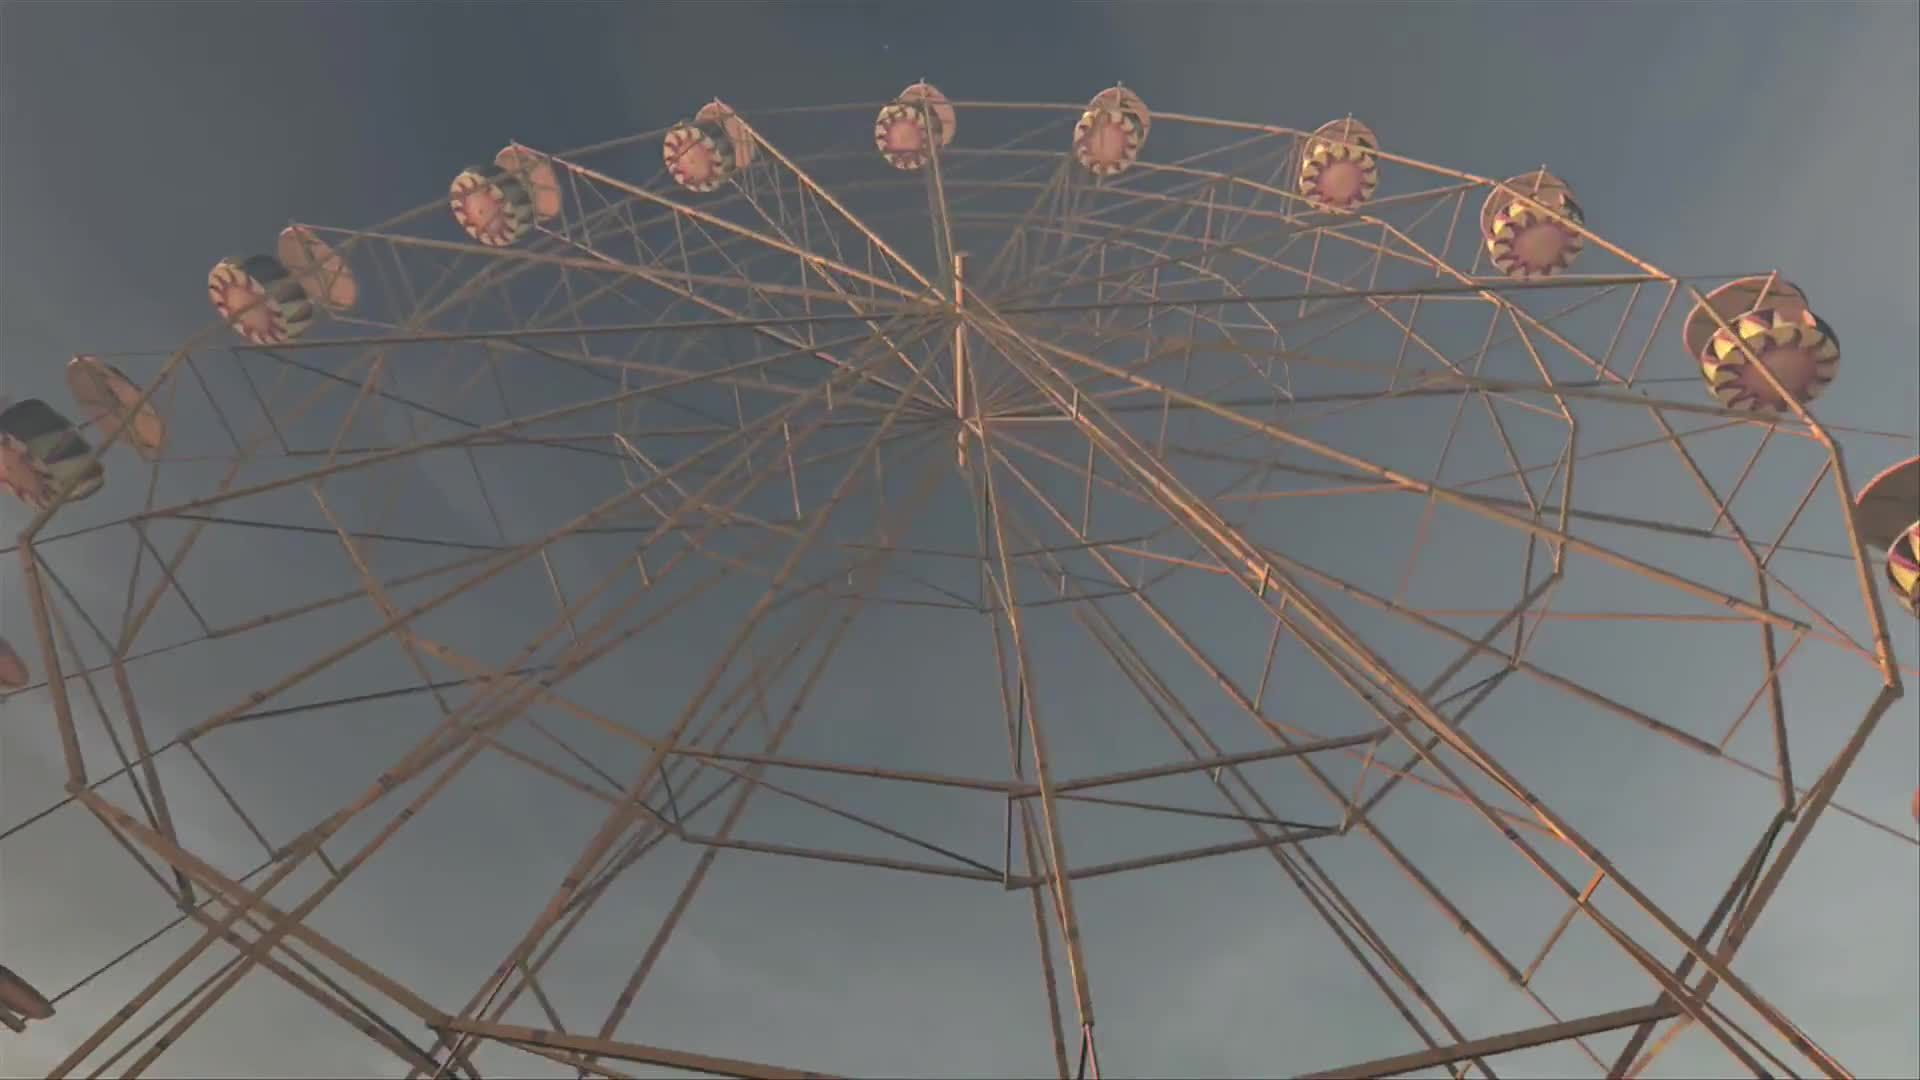 Ferries wheel noria festival fair cloudy